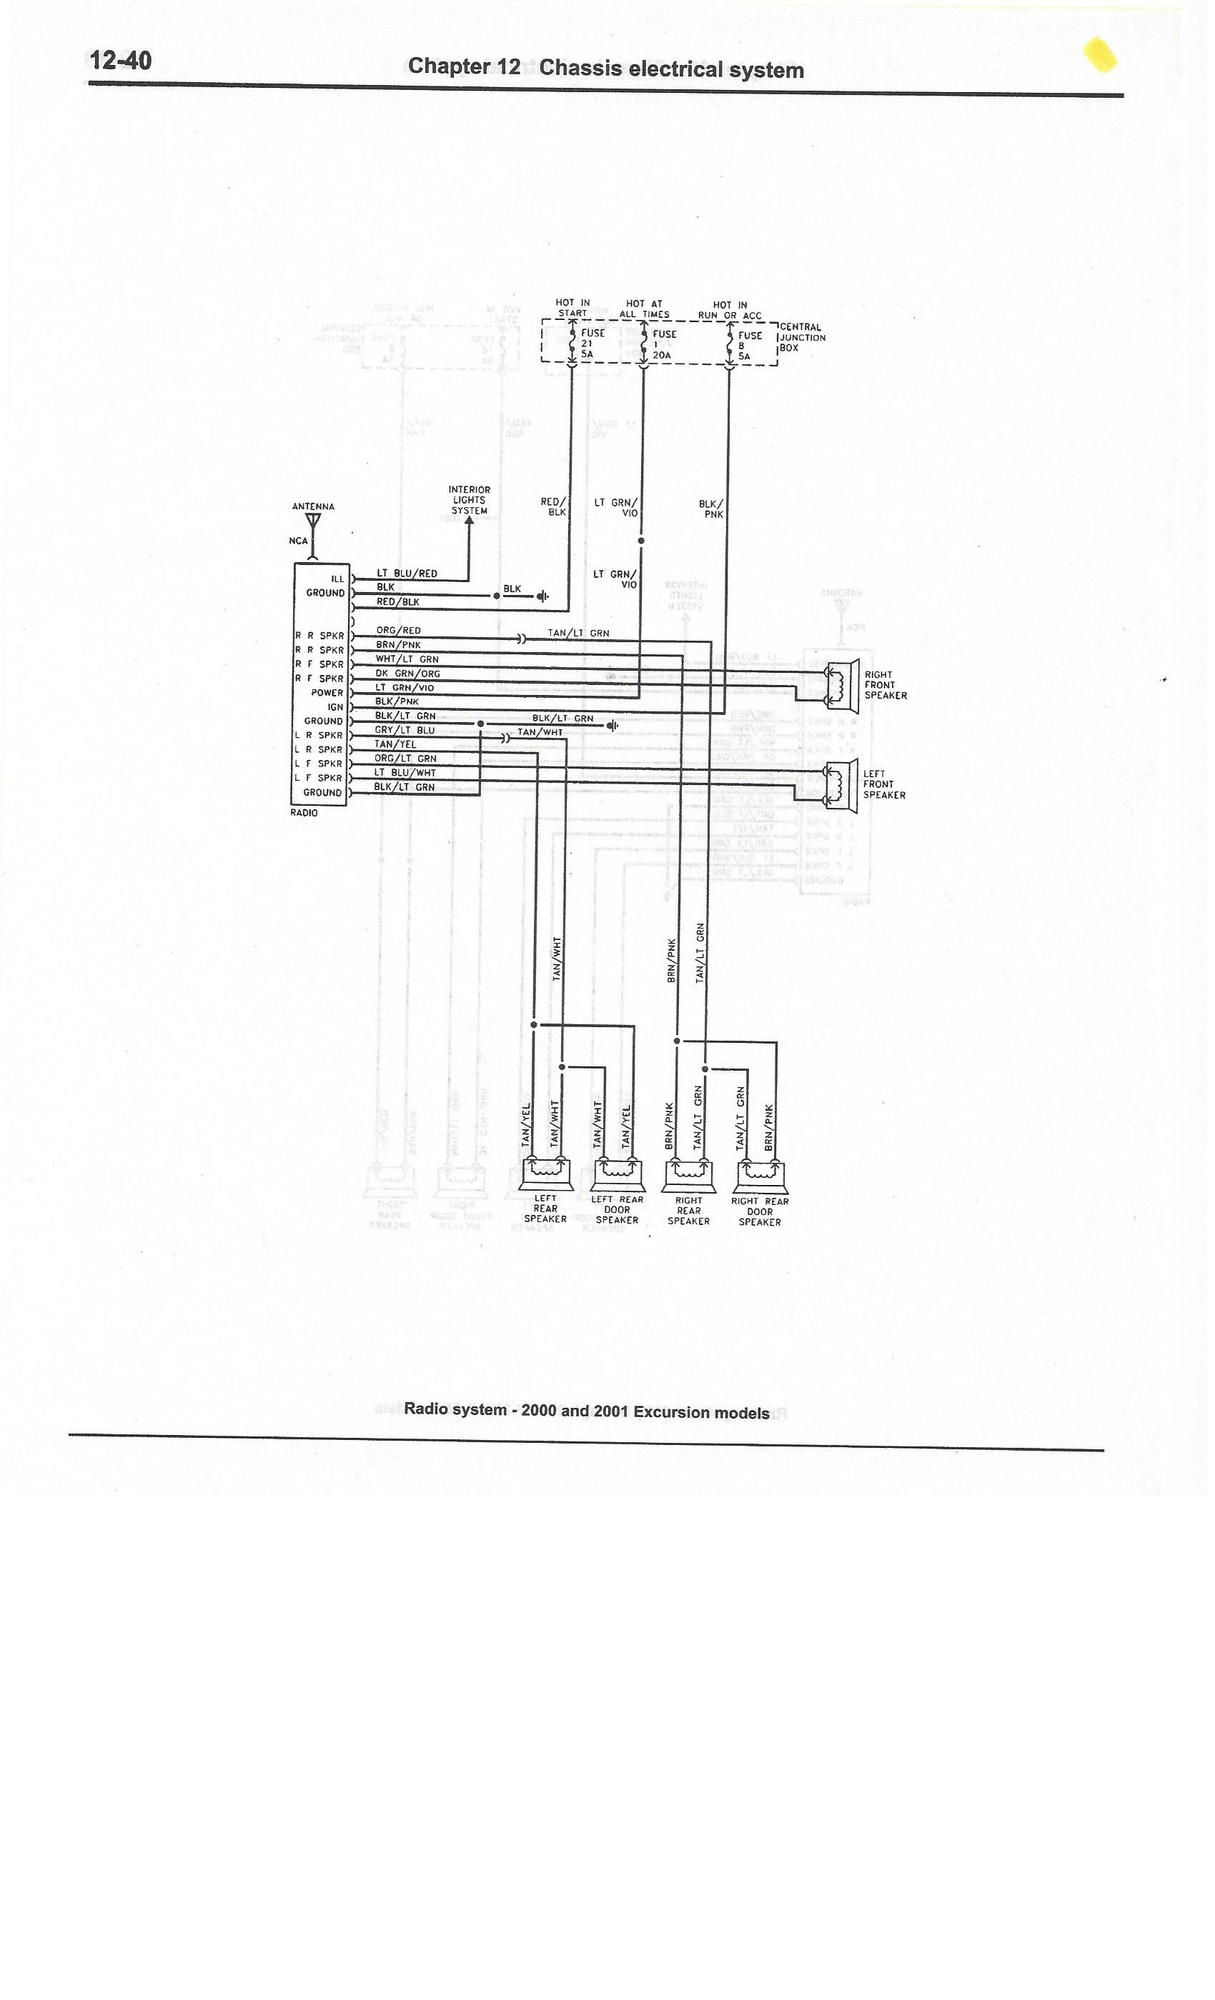 46 Willys Cj2a Wiring Diagram Willys Cj3a Wiring Diagram